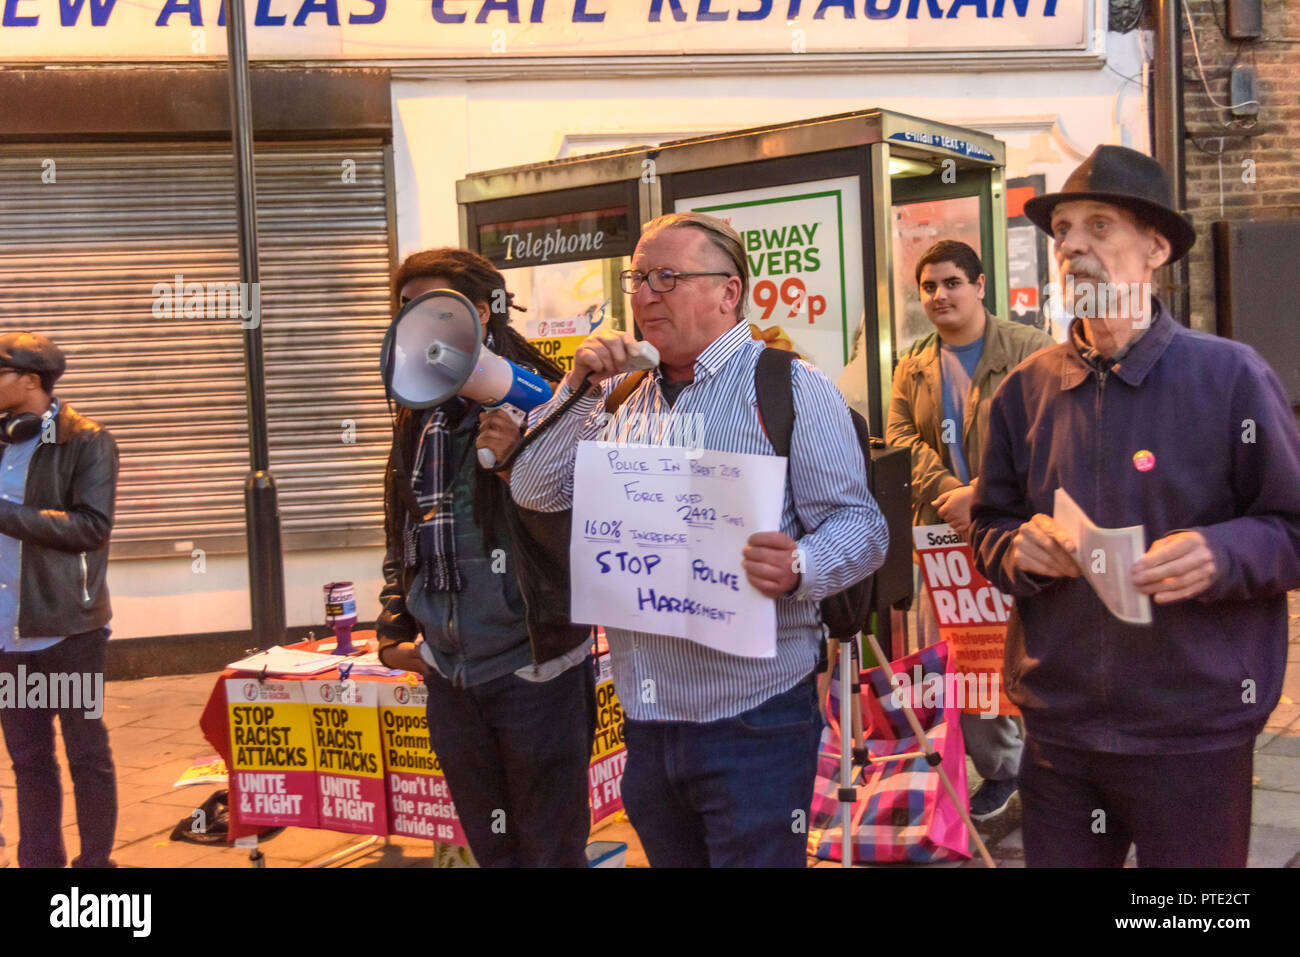 London, UK. October 9th 2018. A man holds a poster showing a huge increase in police use of force in Brent as he speaks about this at the rally outside the New Atlas Cafe Restaurant where a young black man was attacked by police who used obviously unnecessary force when arresting him on suspicion of having been involved in a knife attack. He was assaulted by six officers, and was viciously kicked while officers struggled to handcuff him, andwhen he was well under control and held on the ground he was sprayed in the face with CS gas. Credit: Peter Marshall/Alamy Live News - Stock Image